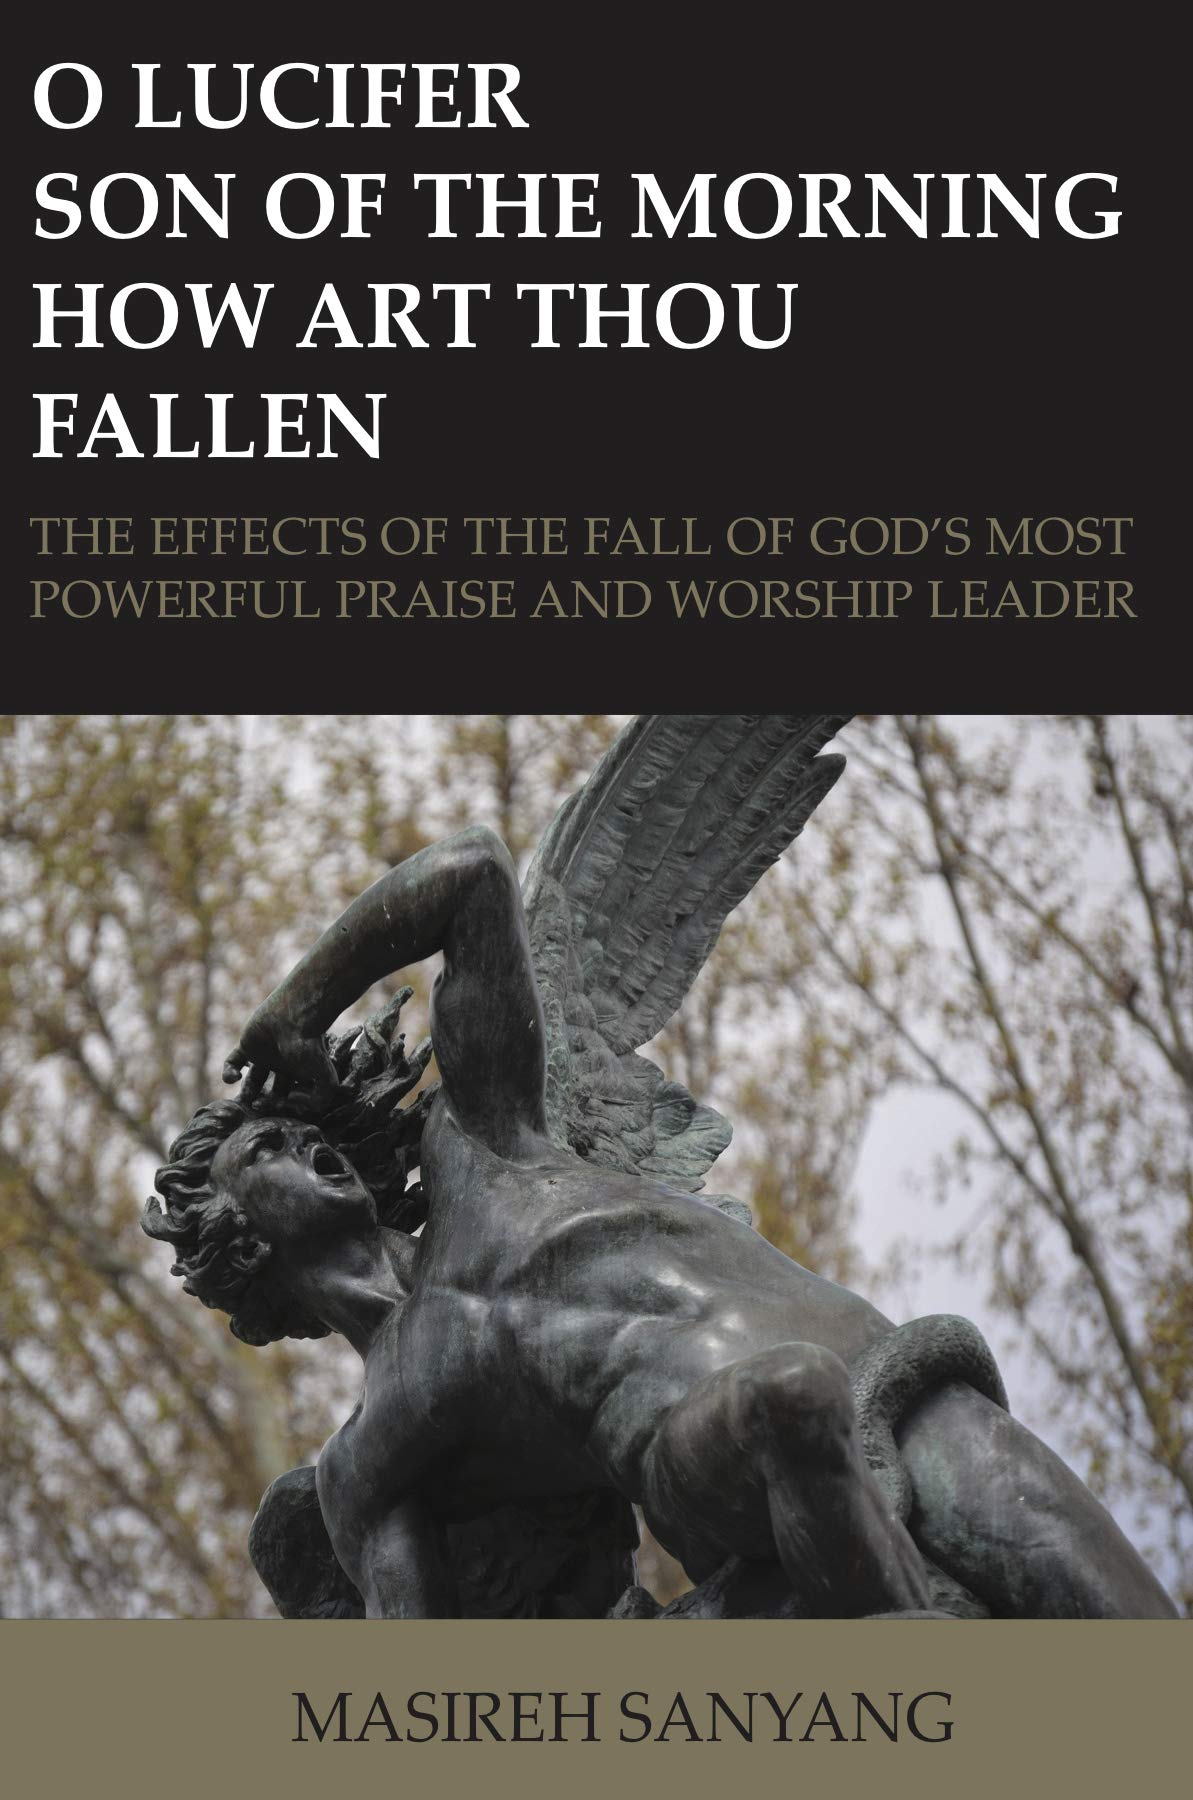 O LUCIFER SON OF THE MORNING HOW ART THOU FALLEN: THE EFFECTS OF THE FALL OF GOD'S MOST POWERFUL PRAISE AND WORSHIP LEADER